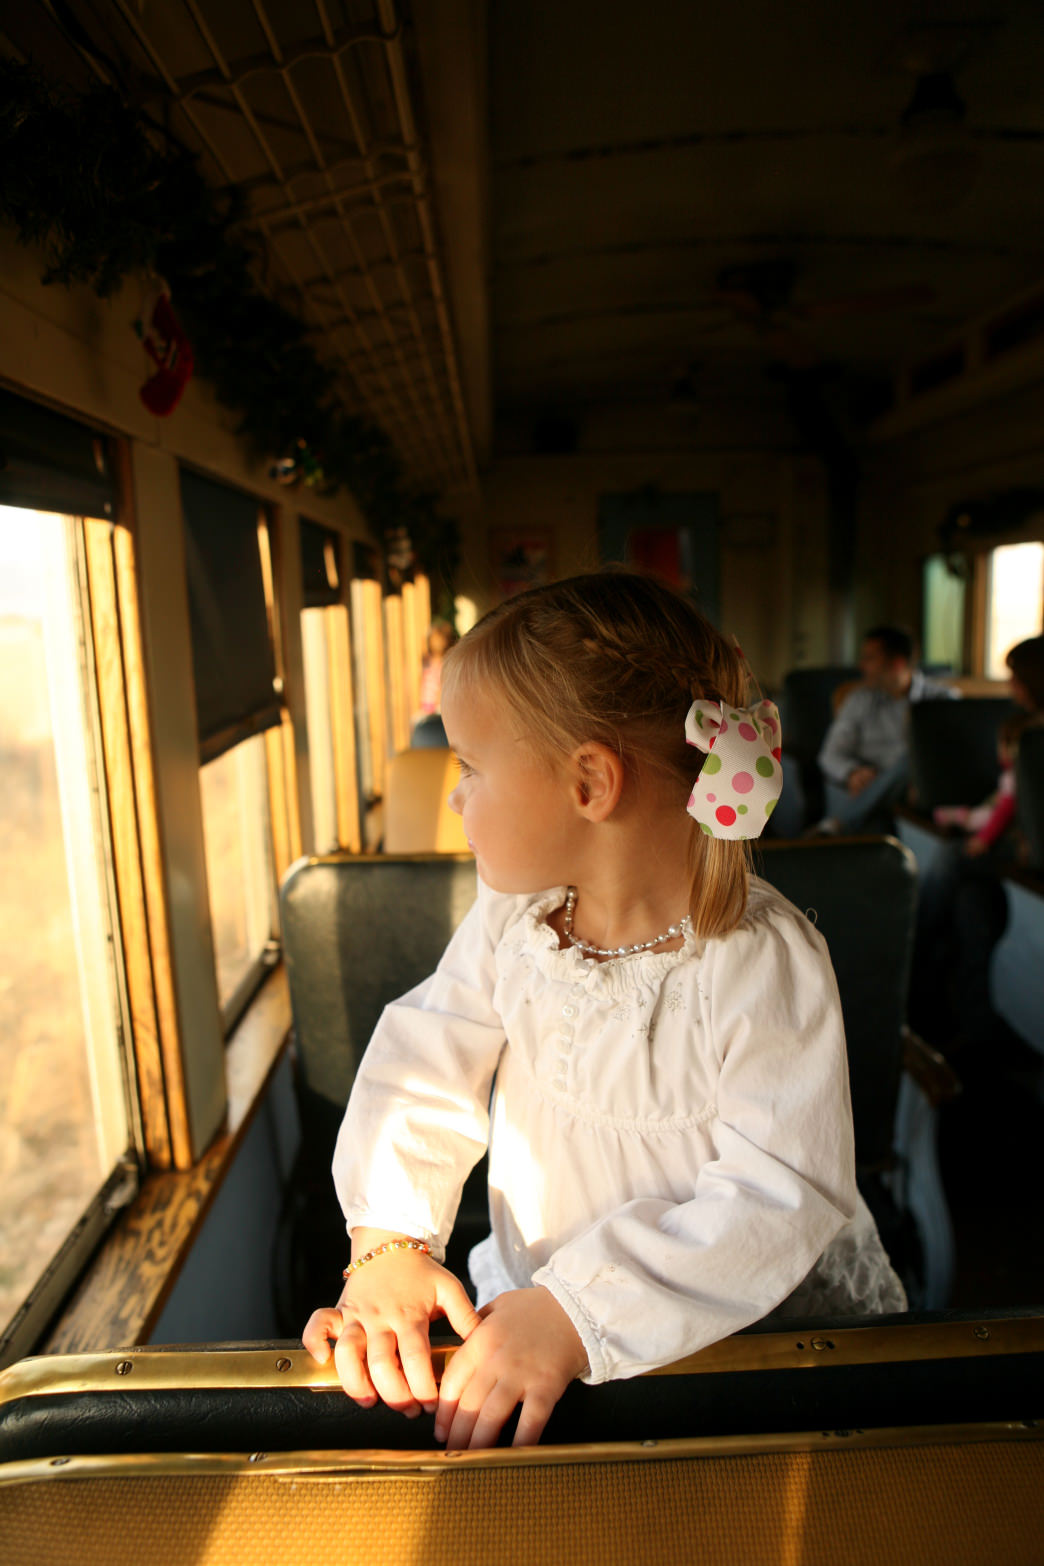 The Heber Valley Railroad offers a scenic trip for families.